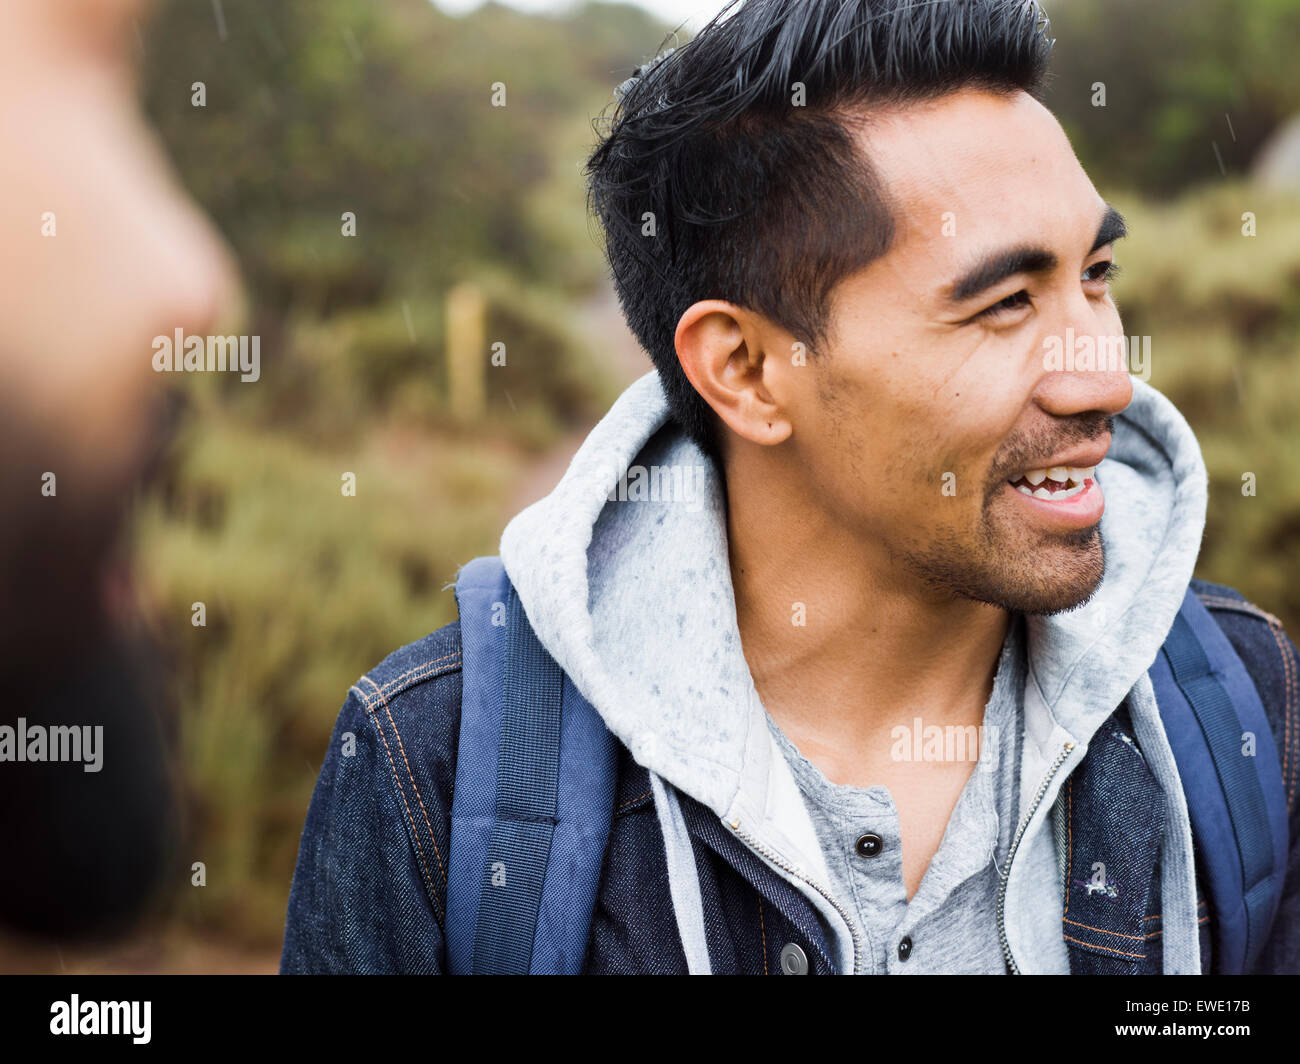 Two men, one smiling wearing a hooded top - Stock Image